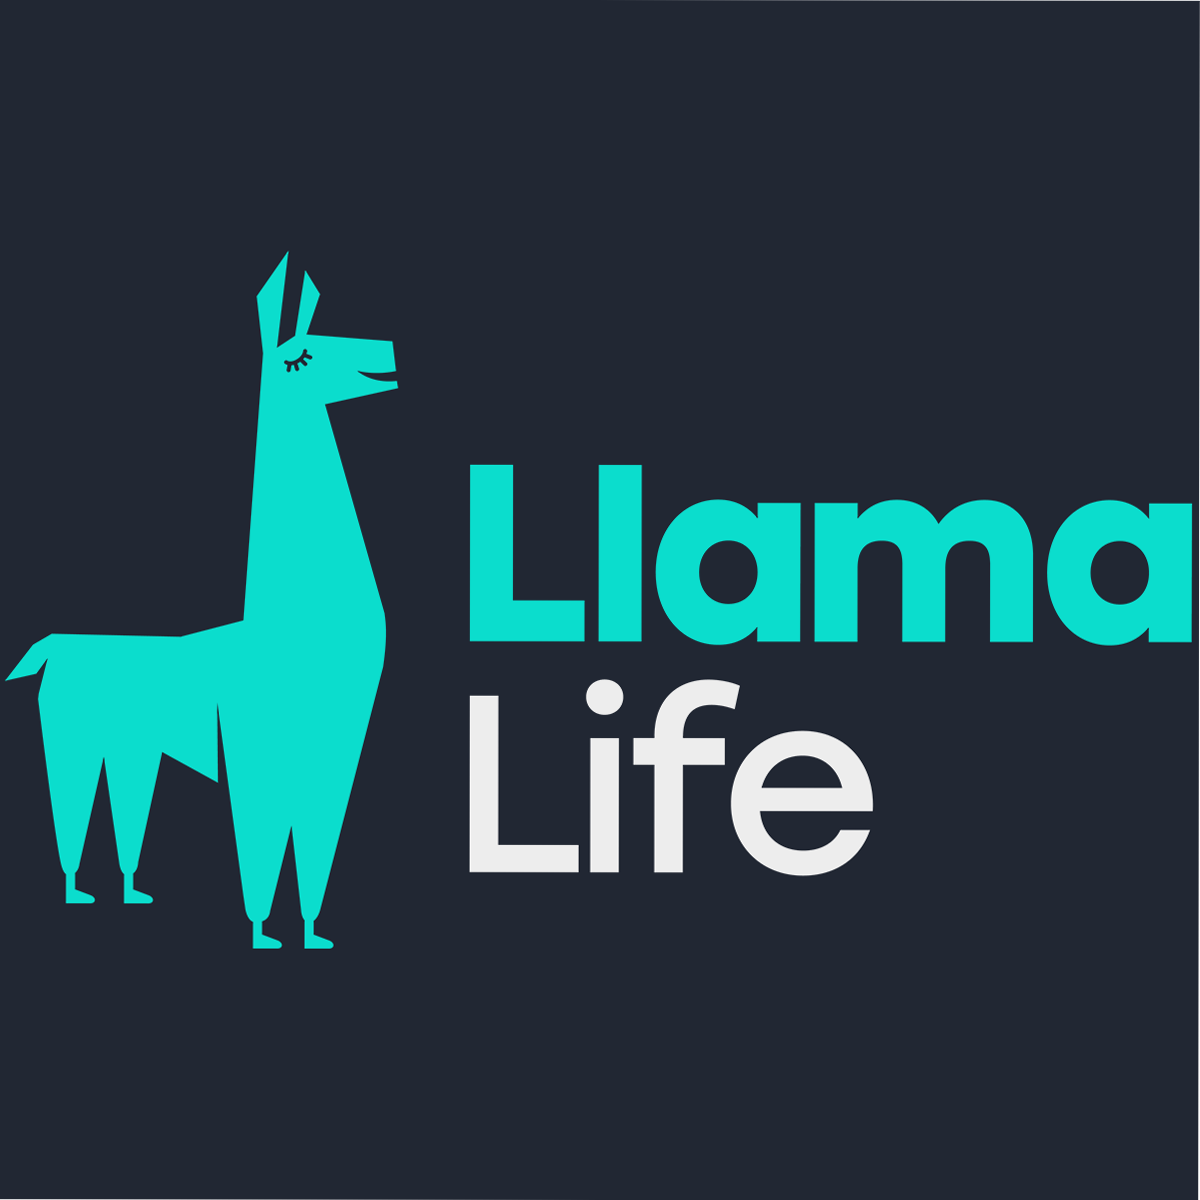 Llama Life Set to Disrupt The Insurance Industry With Their Online Life Insurance and Deals